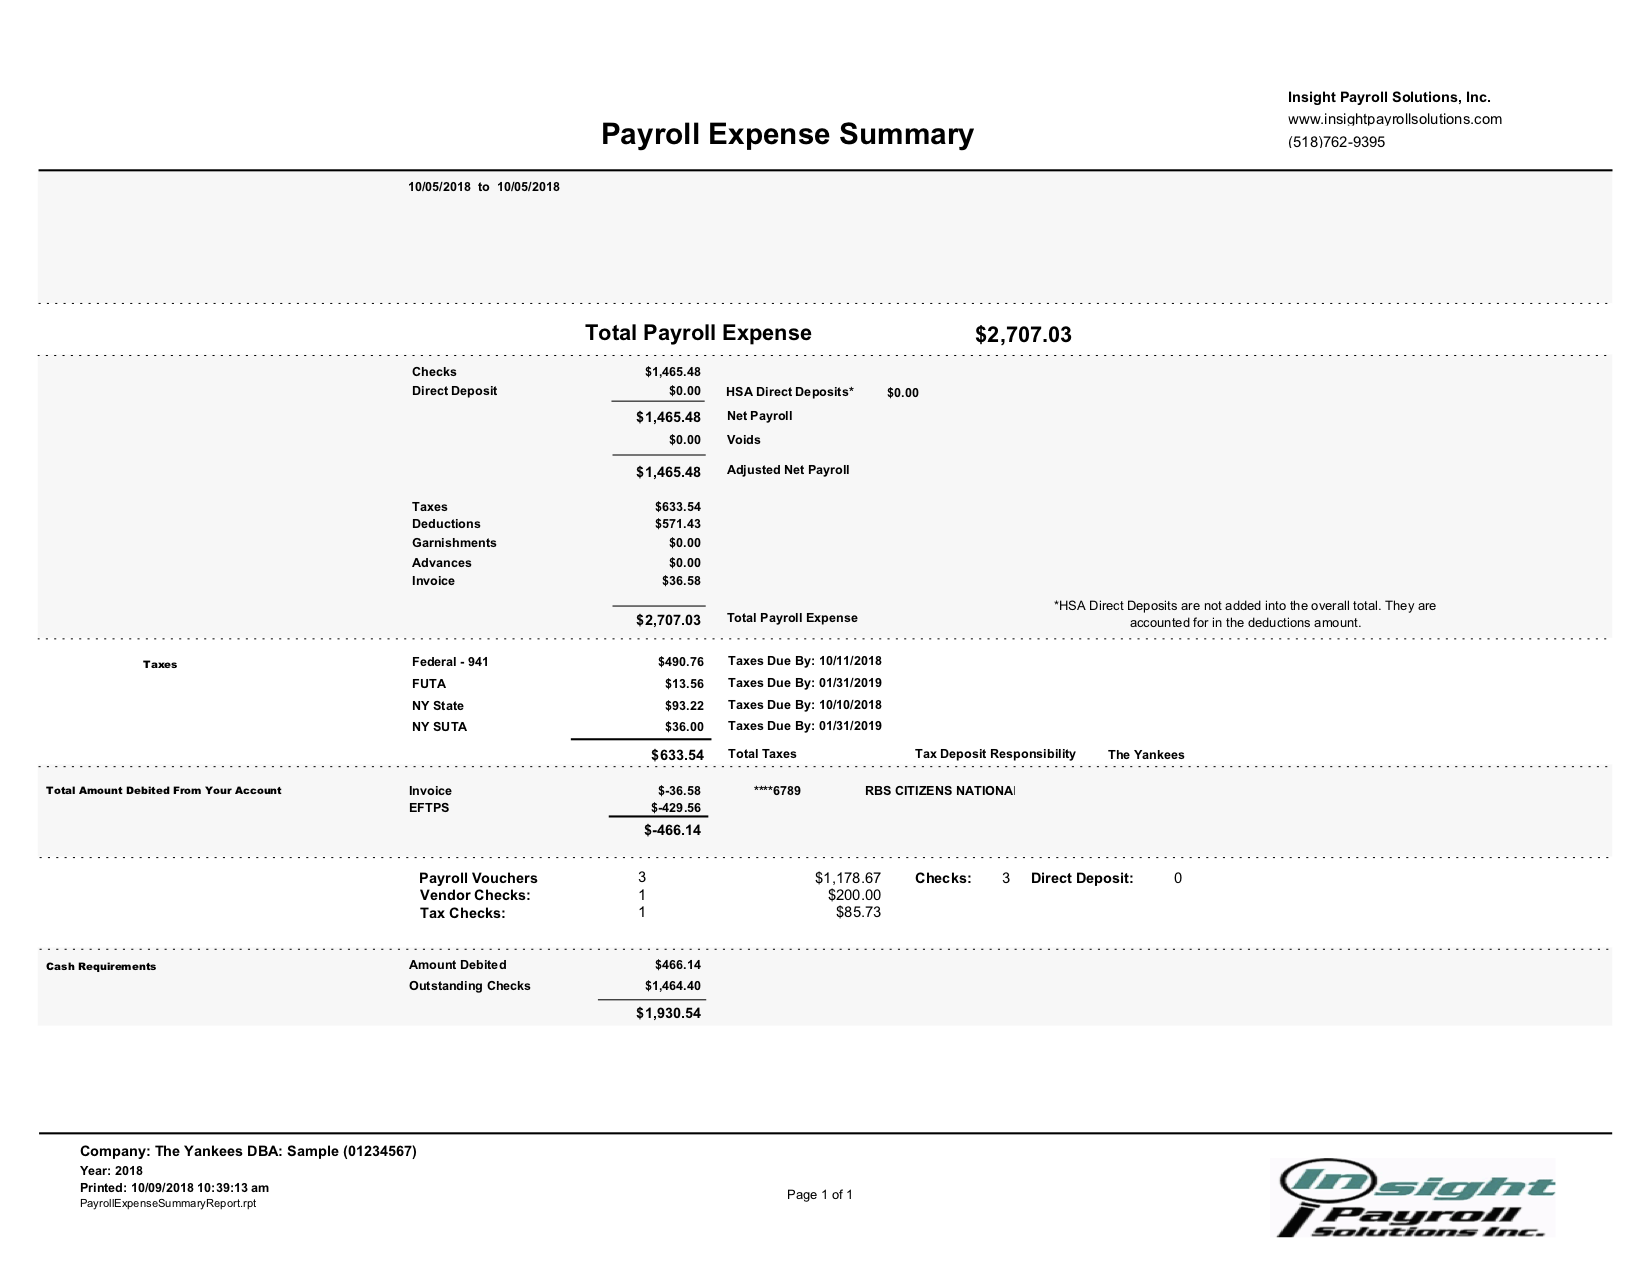 Payroll - Insight Payroll Solutions